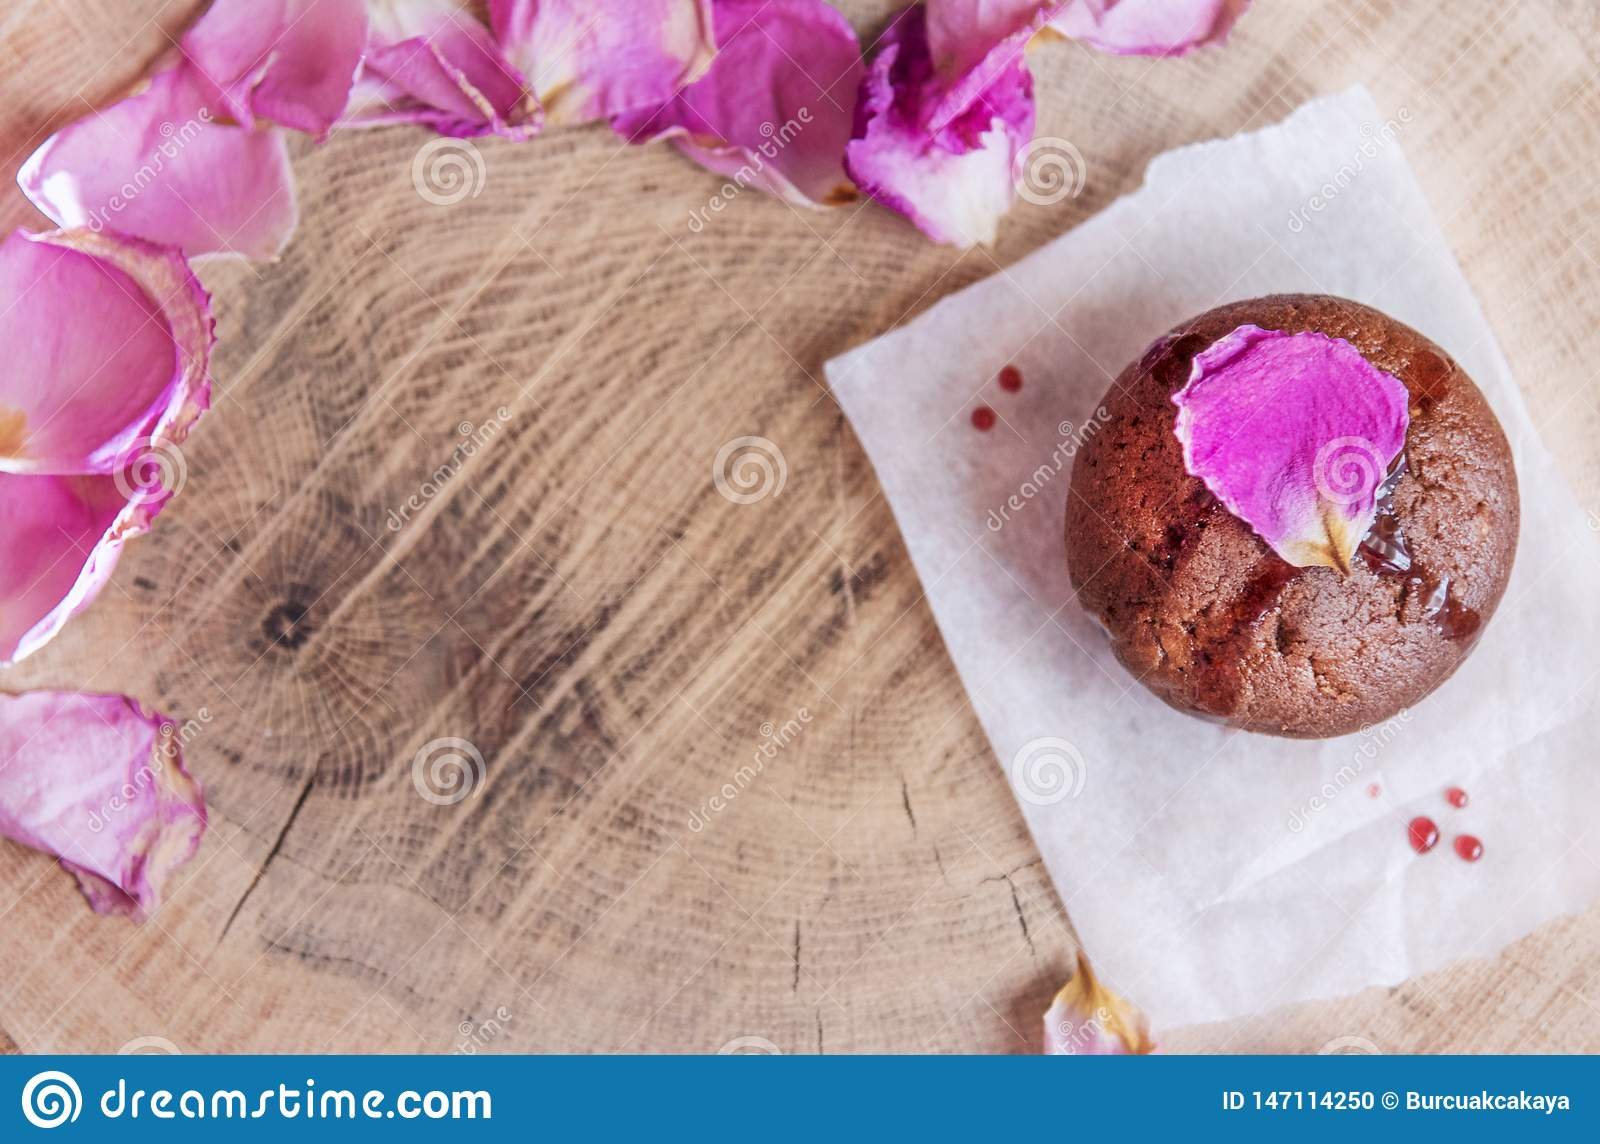 Chocolate cake on a baking paper served with rose petals on a wooden sevice plate, above vanta